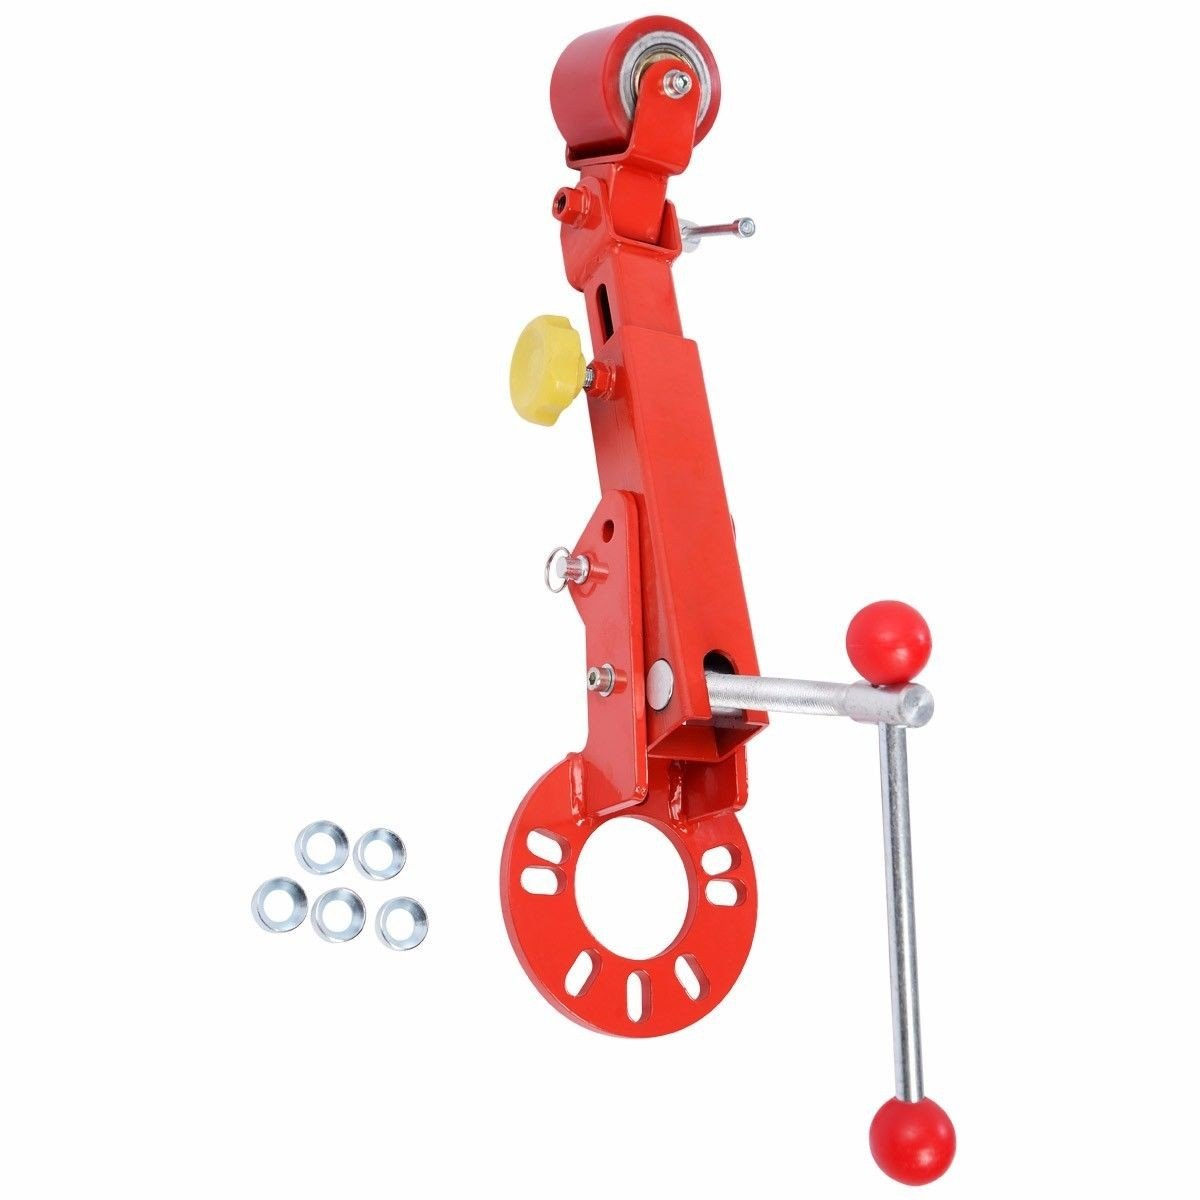 Roll Fender Reforming Extending Tool Wheel Arch Roller Flaring Former Heavy Duty Ton Adjustable Height Red Black Tool Us Picker Pneumatic Useful BESTChoiceForYou